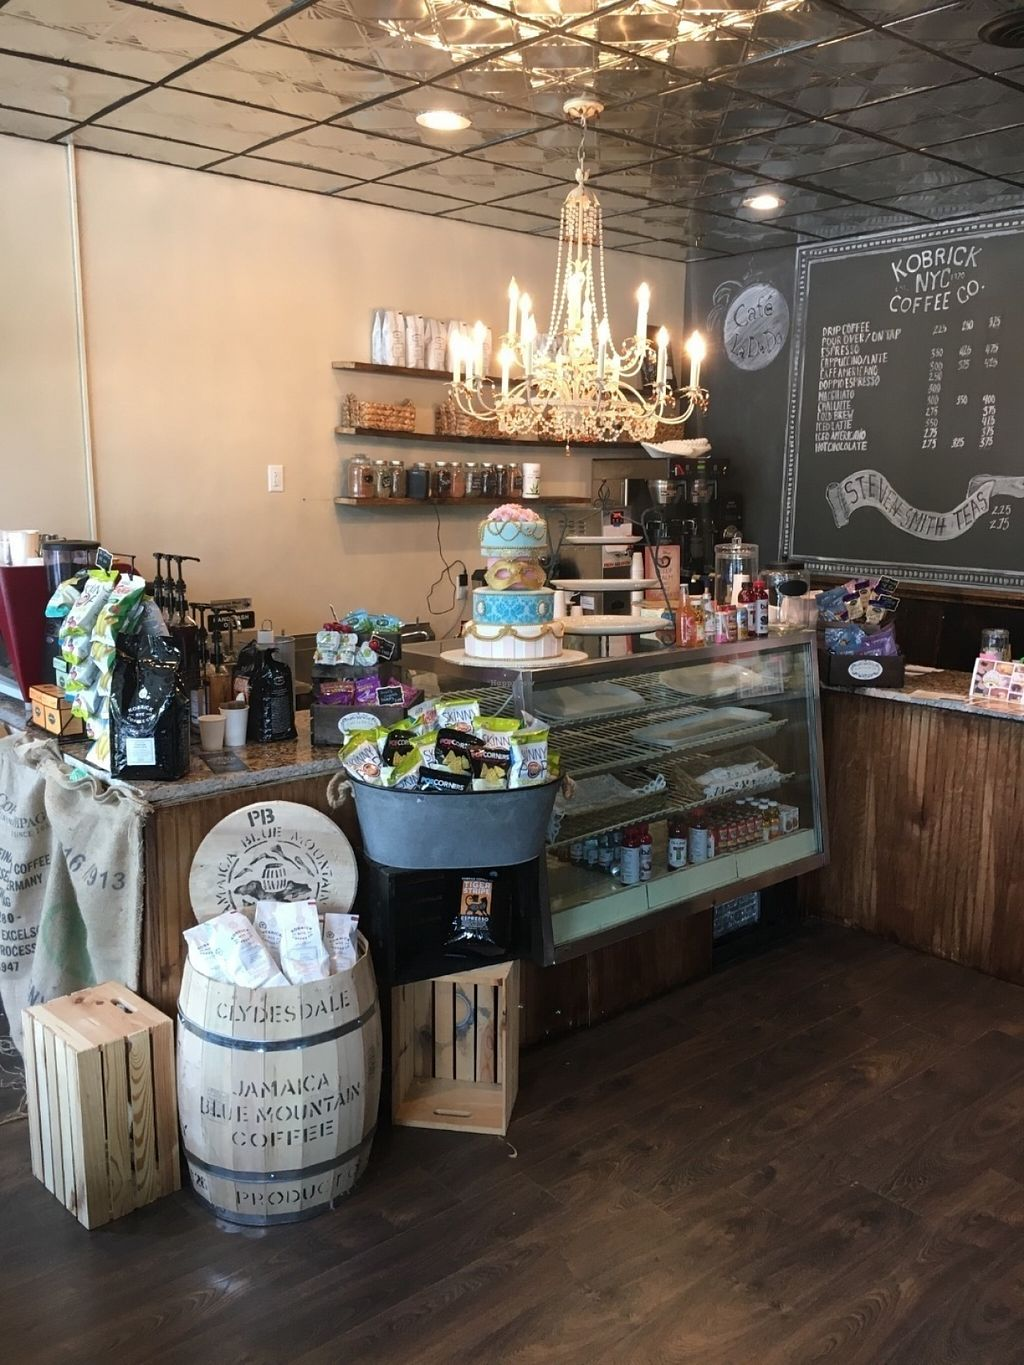 """Photo of Cafe la De Da   by <a href=""""/members/profile/Cafeladeda1"""">Cafeladeda1</a> <br/>Wifi, seating and  vegan and gluten free lunch items available  <br/> July 23, 2016  - <a href='/contact/abuse/image/77003/161791'>Report</a>"""